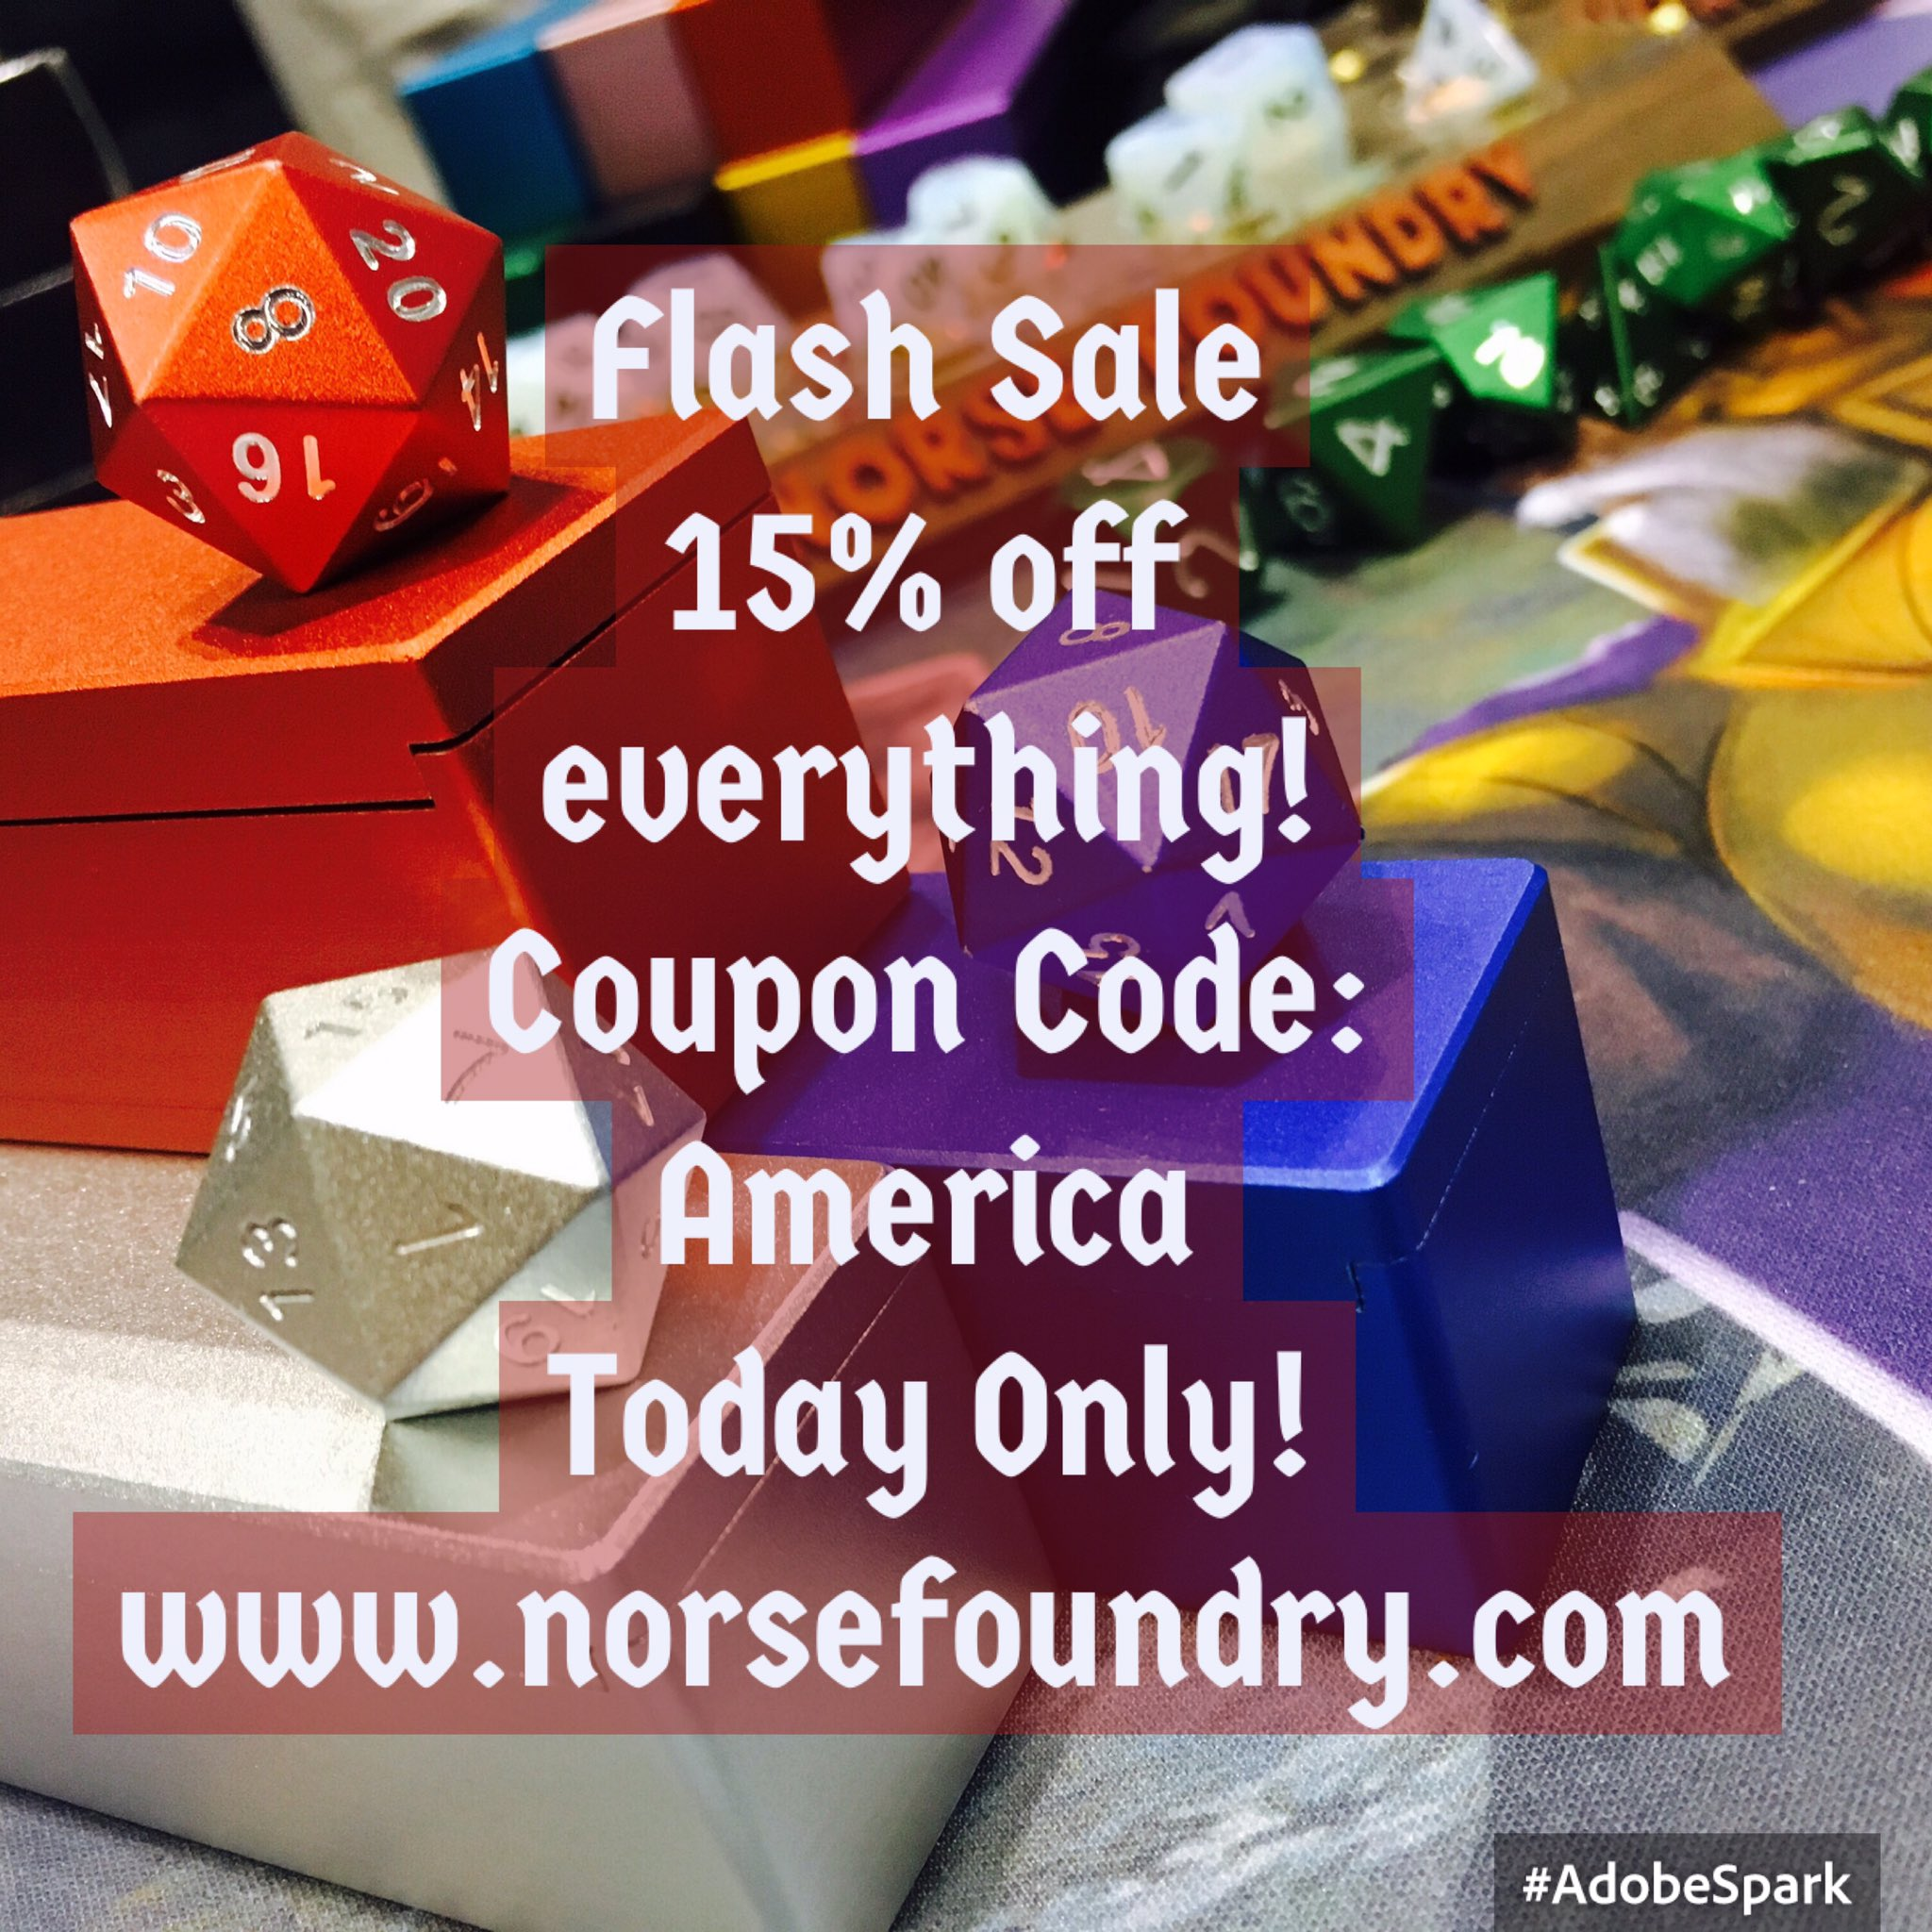 Norse Foundry On Twitter Flash Sale 15 Off Everything No Limits Today Only Https T Co Tz0cudl5au Dice Dicesale Flashsale Rpgcoins Norse foundry is raising funds for atmar's cardography: twitter